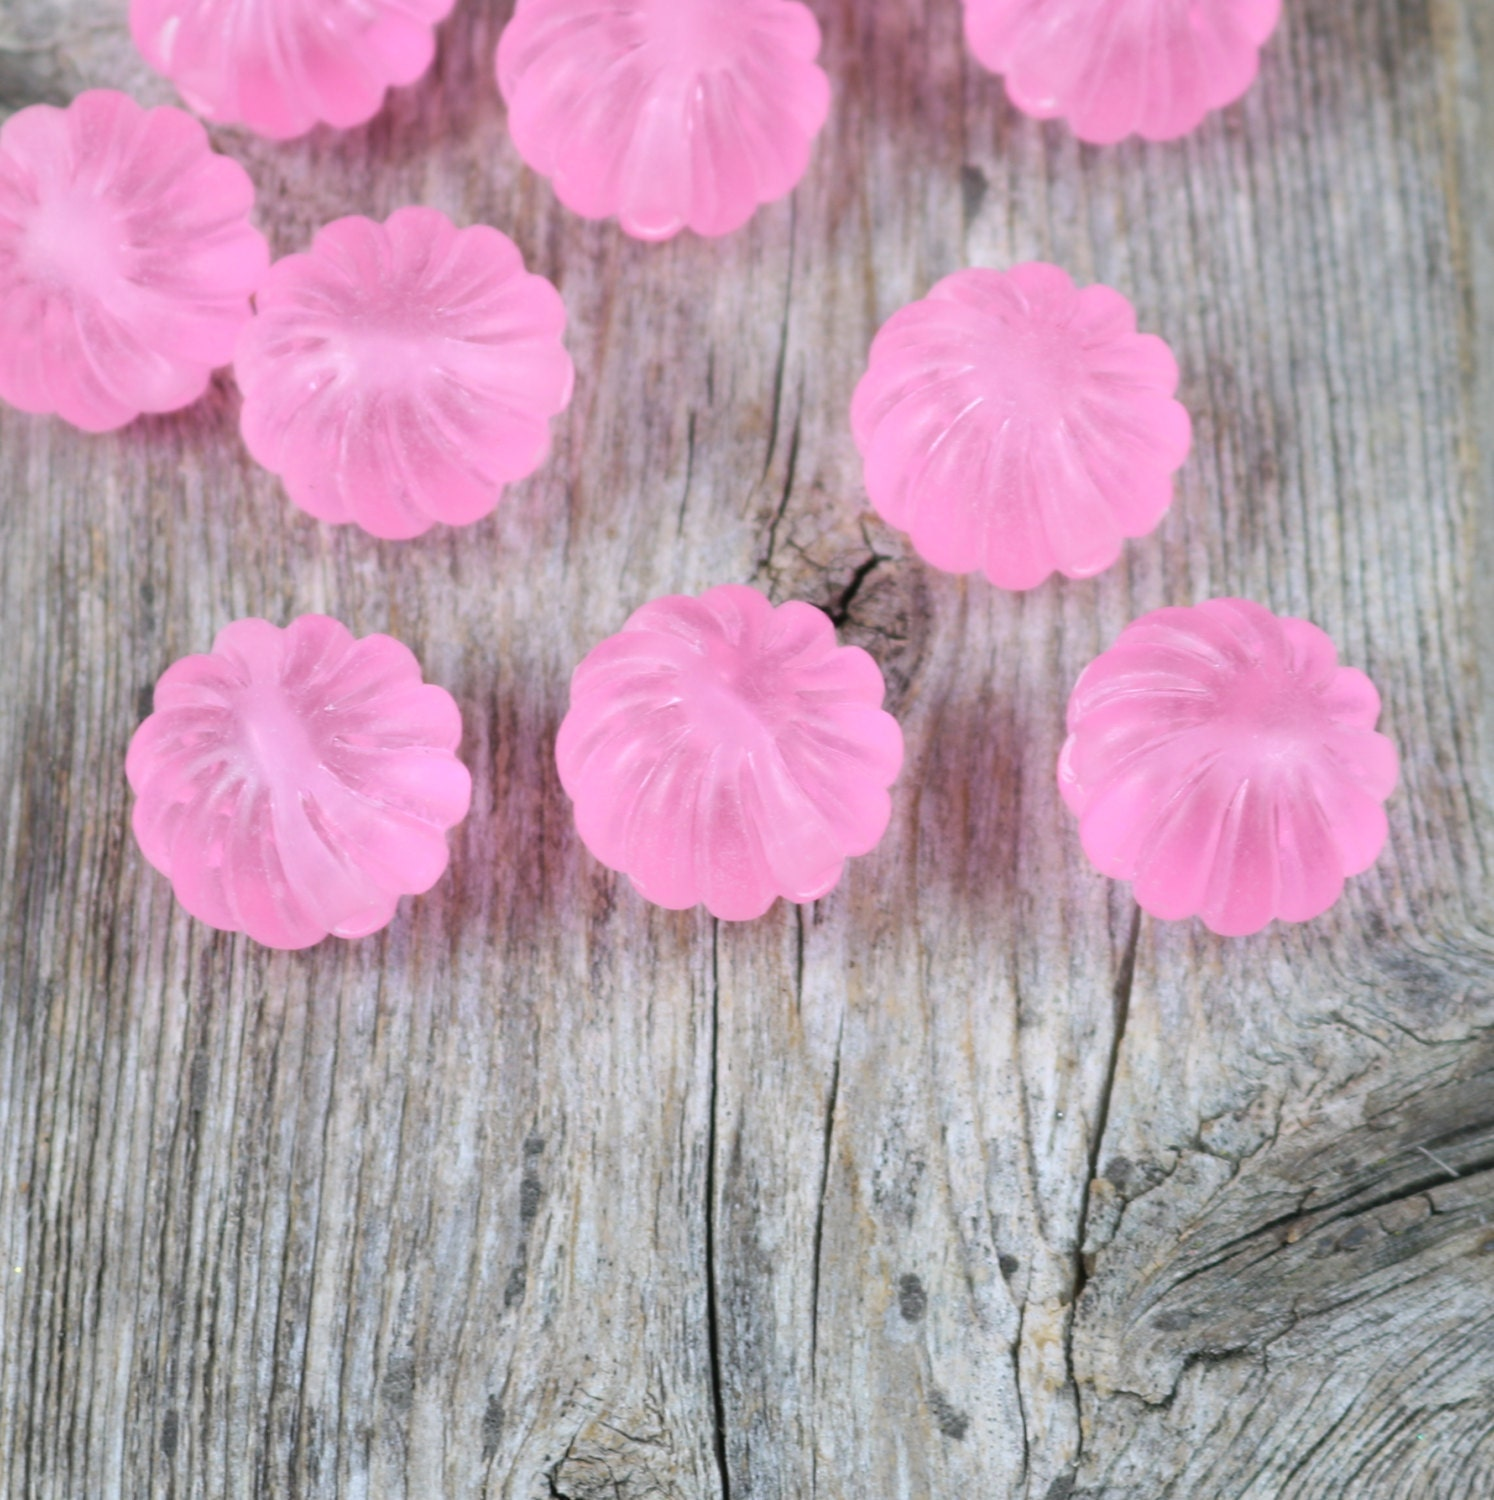 Acrylic Cotton Candy Pink Beads Flower Shape by CastlebarnCurio